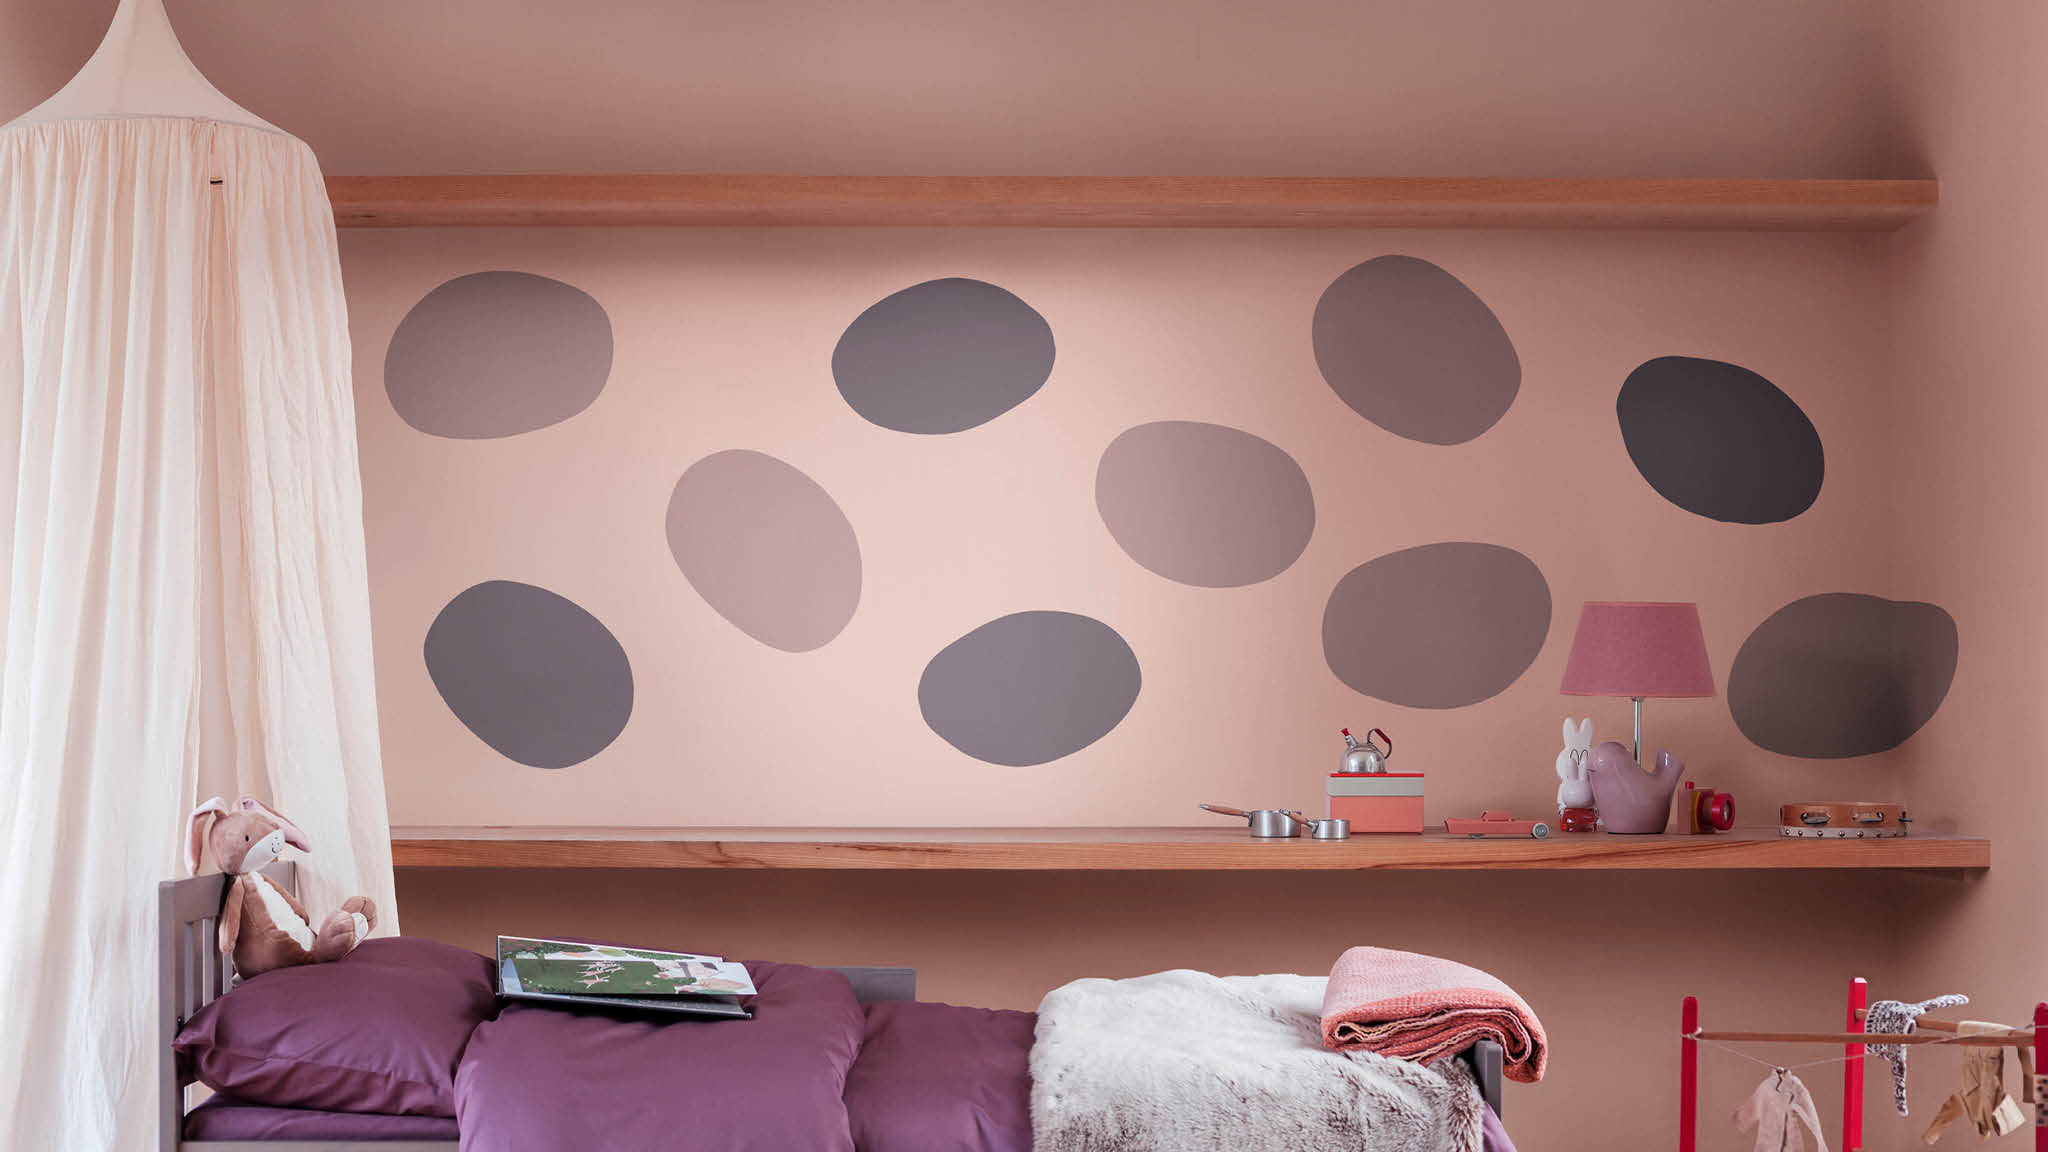 Use Heart Wood shapes to create a fantasy child's bedroom